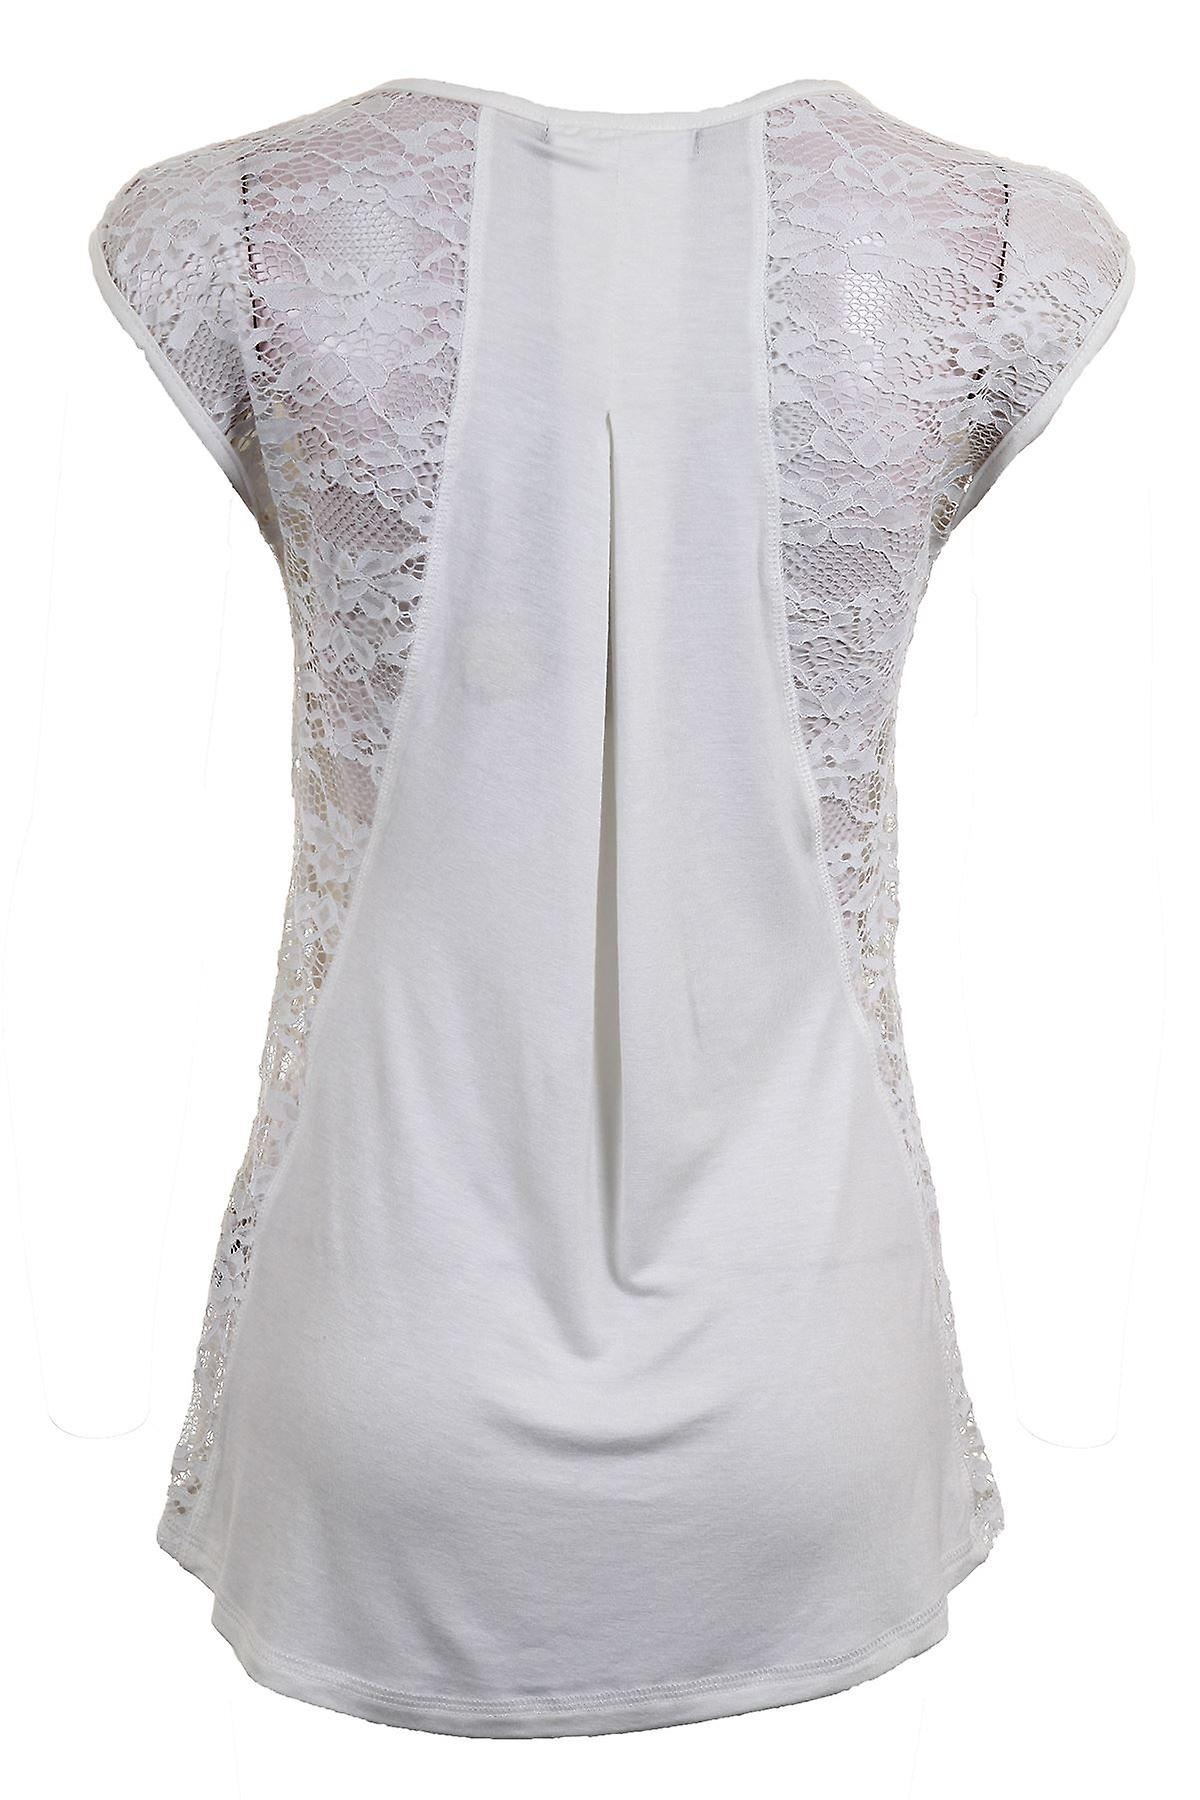 Ladies Cap Sleeve Lace Contrast Plain Floral Pattern Low Back Smart Evening Women's Top